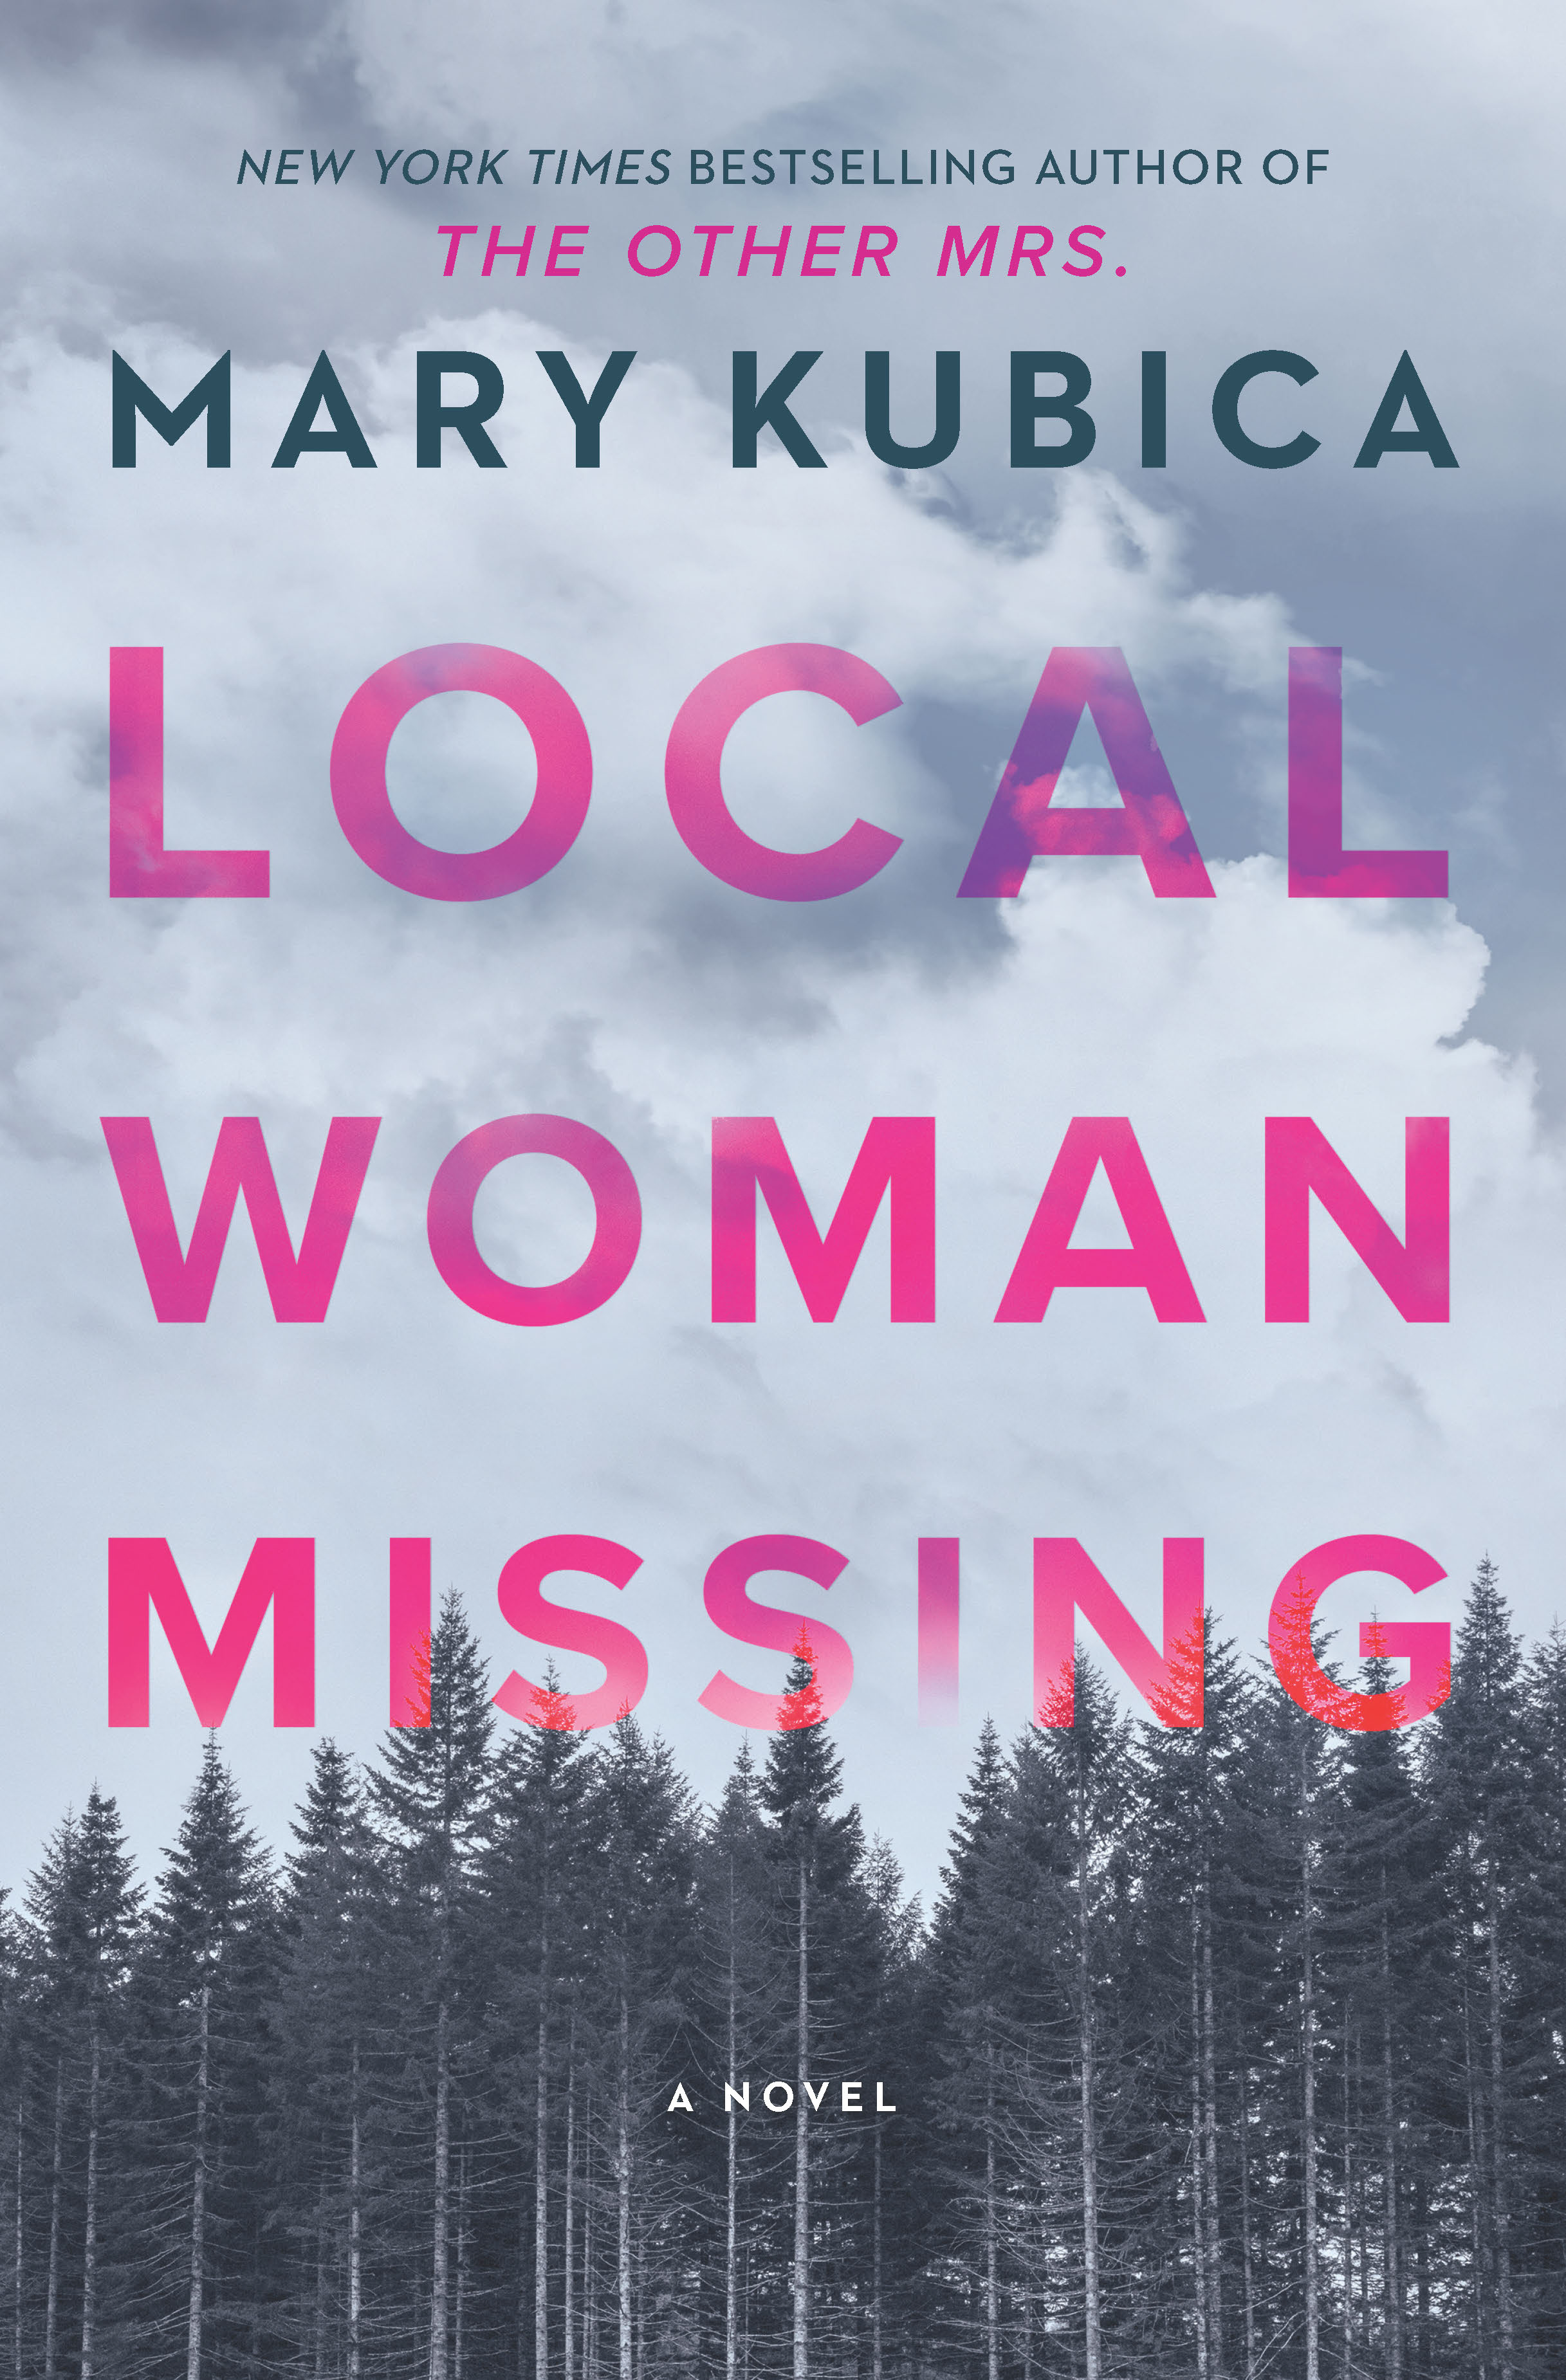 Local Woman Missing cover_SMP